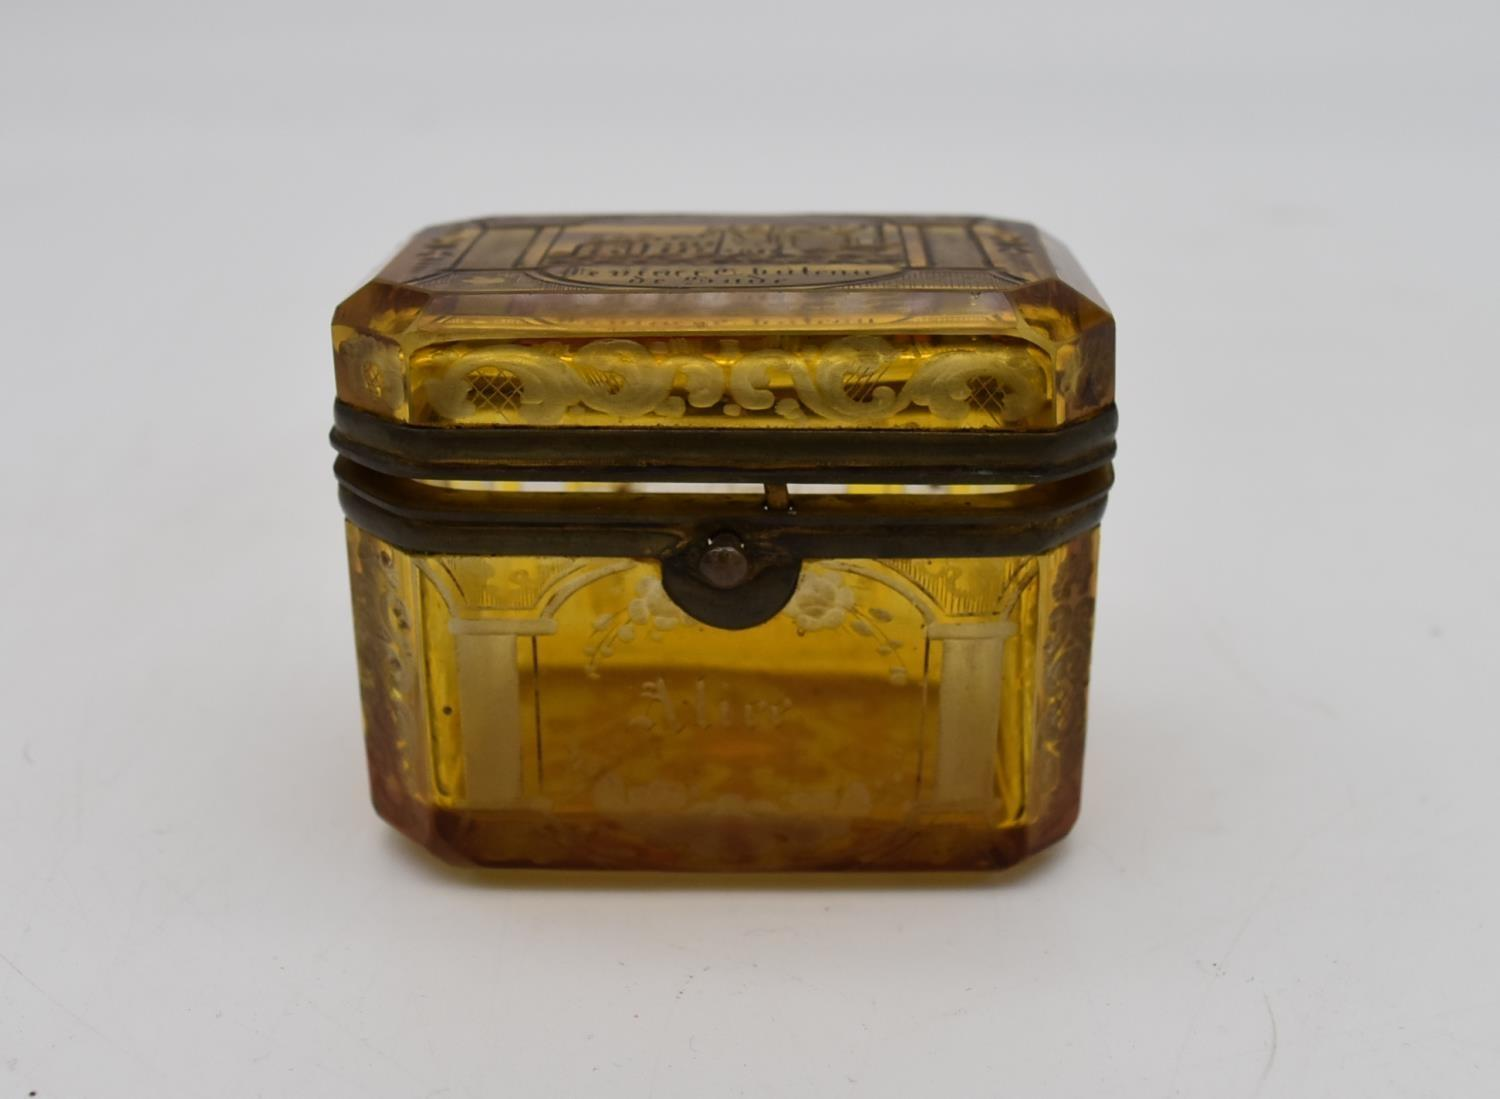 A small 19th century engraved amber glass and ormolu mounted box. H.7x8cm